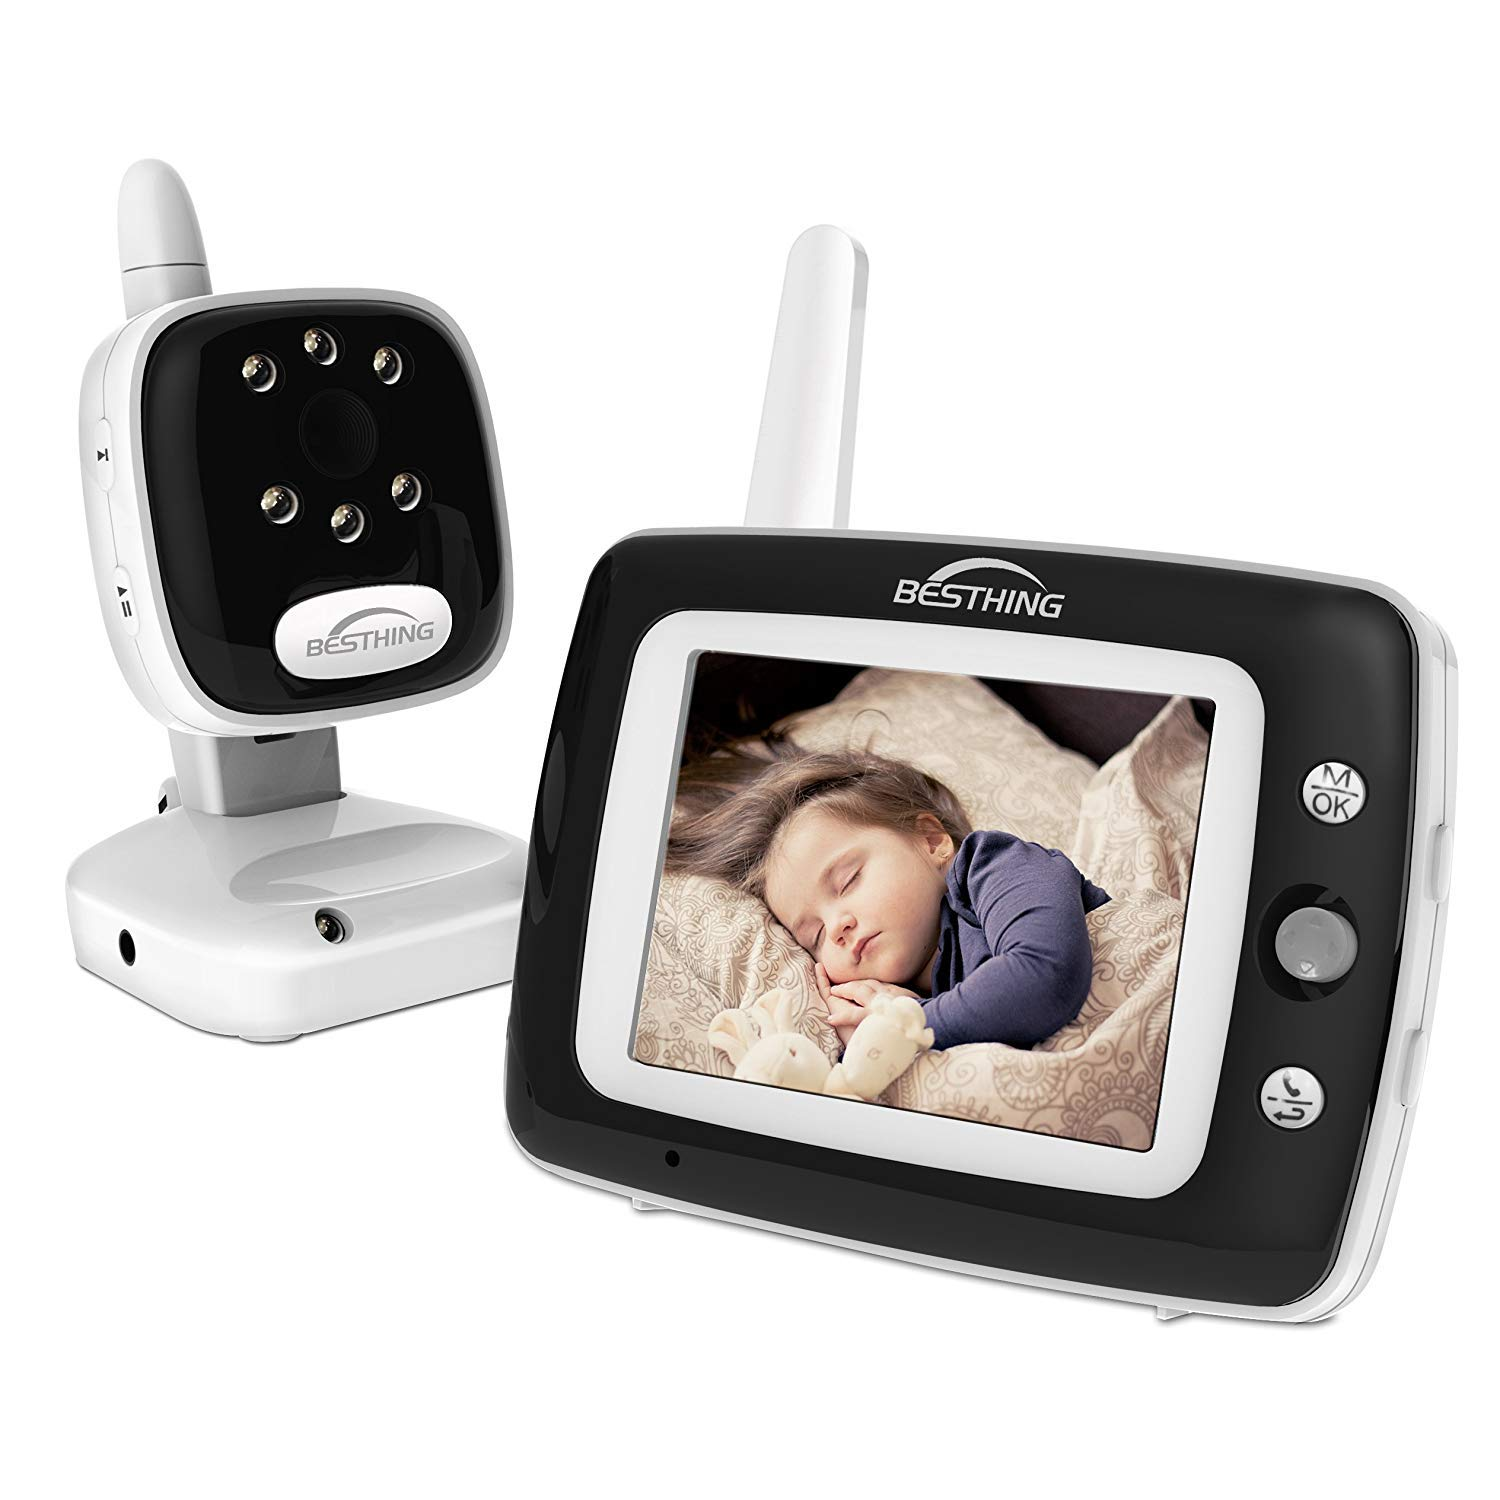 [2019 New Version] Digital Baby Monitor with Camera, 3.5 Inch Color Screen, Long Range Wireless Monitoring with Night Vision, Soothing Lullabies, Two Way Audio and Temperature Display by BESTHING (Image #1)